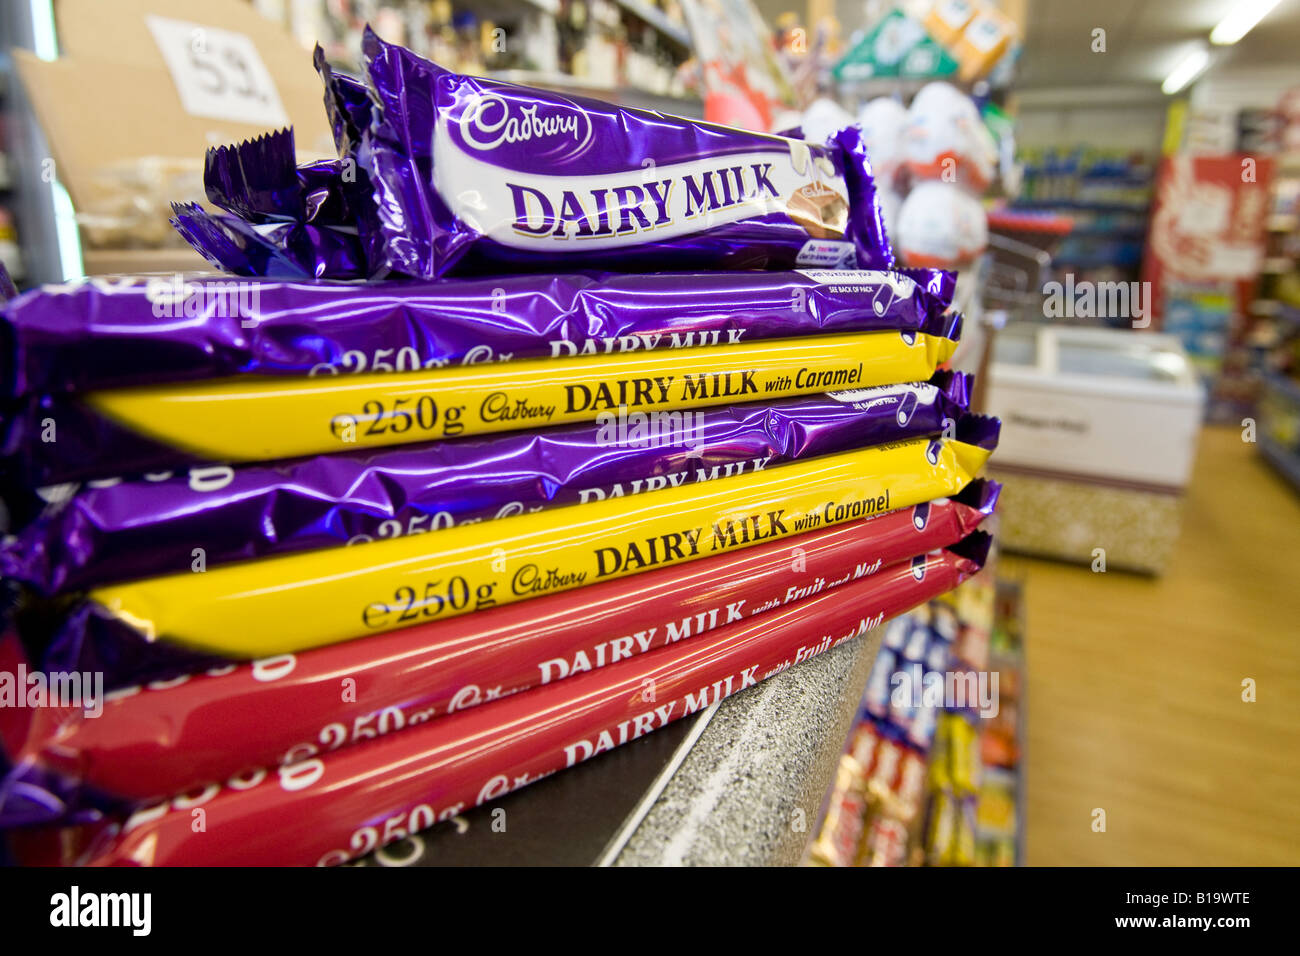 Cadbury Chocolate Bars Stock Photos & Cadbury Chocolate Bars Stock ...